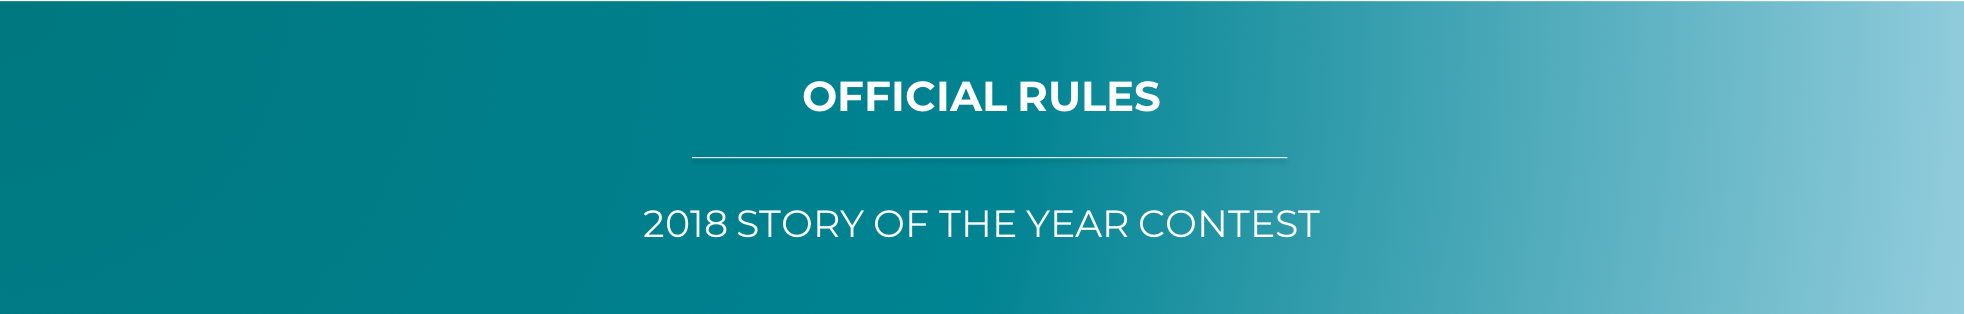 OFFICIAL rules banner.png